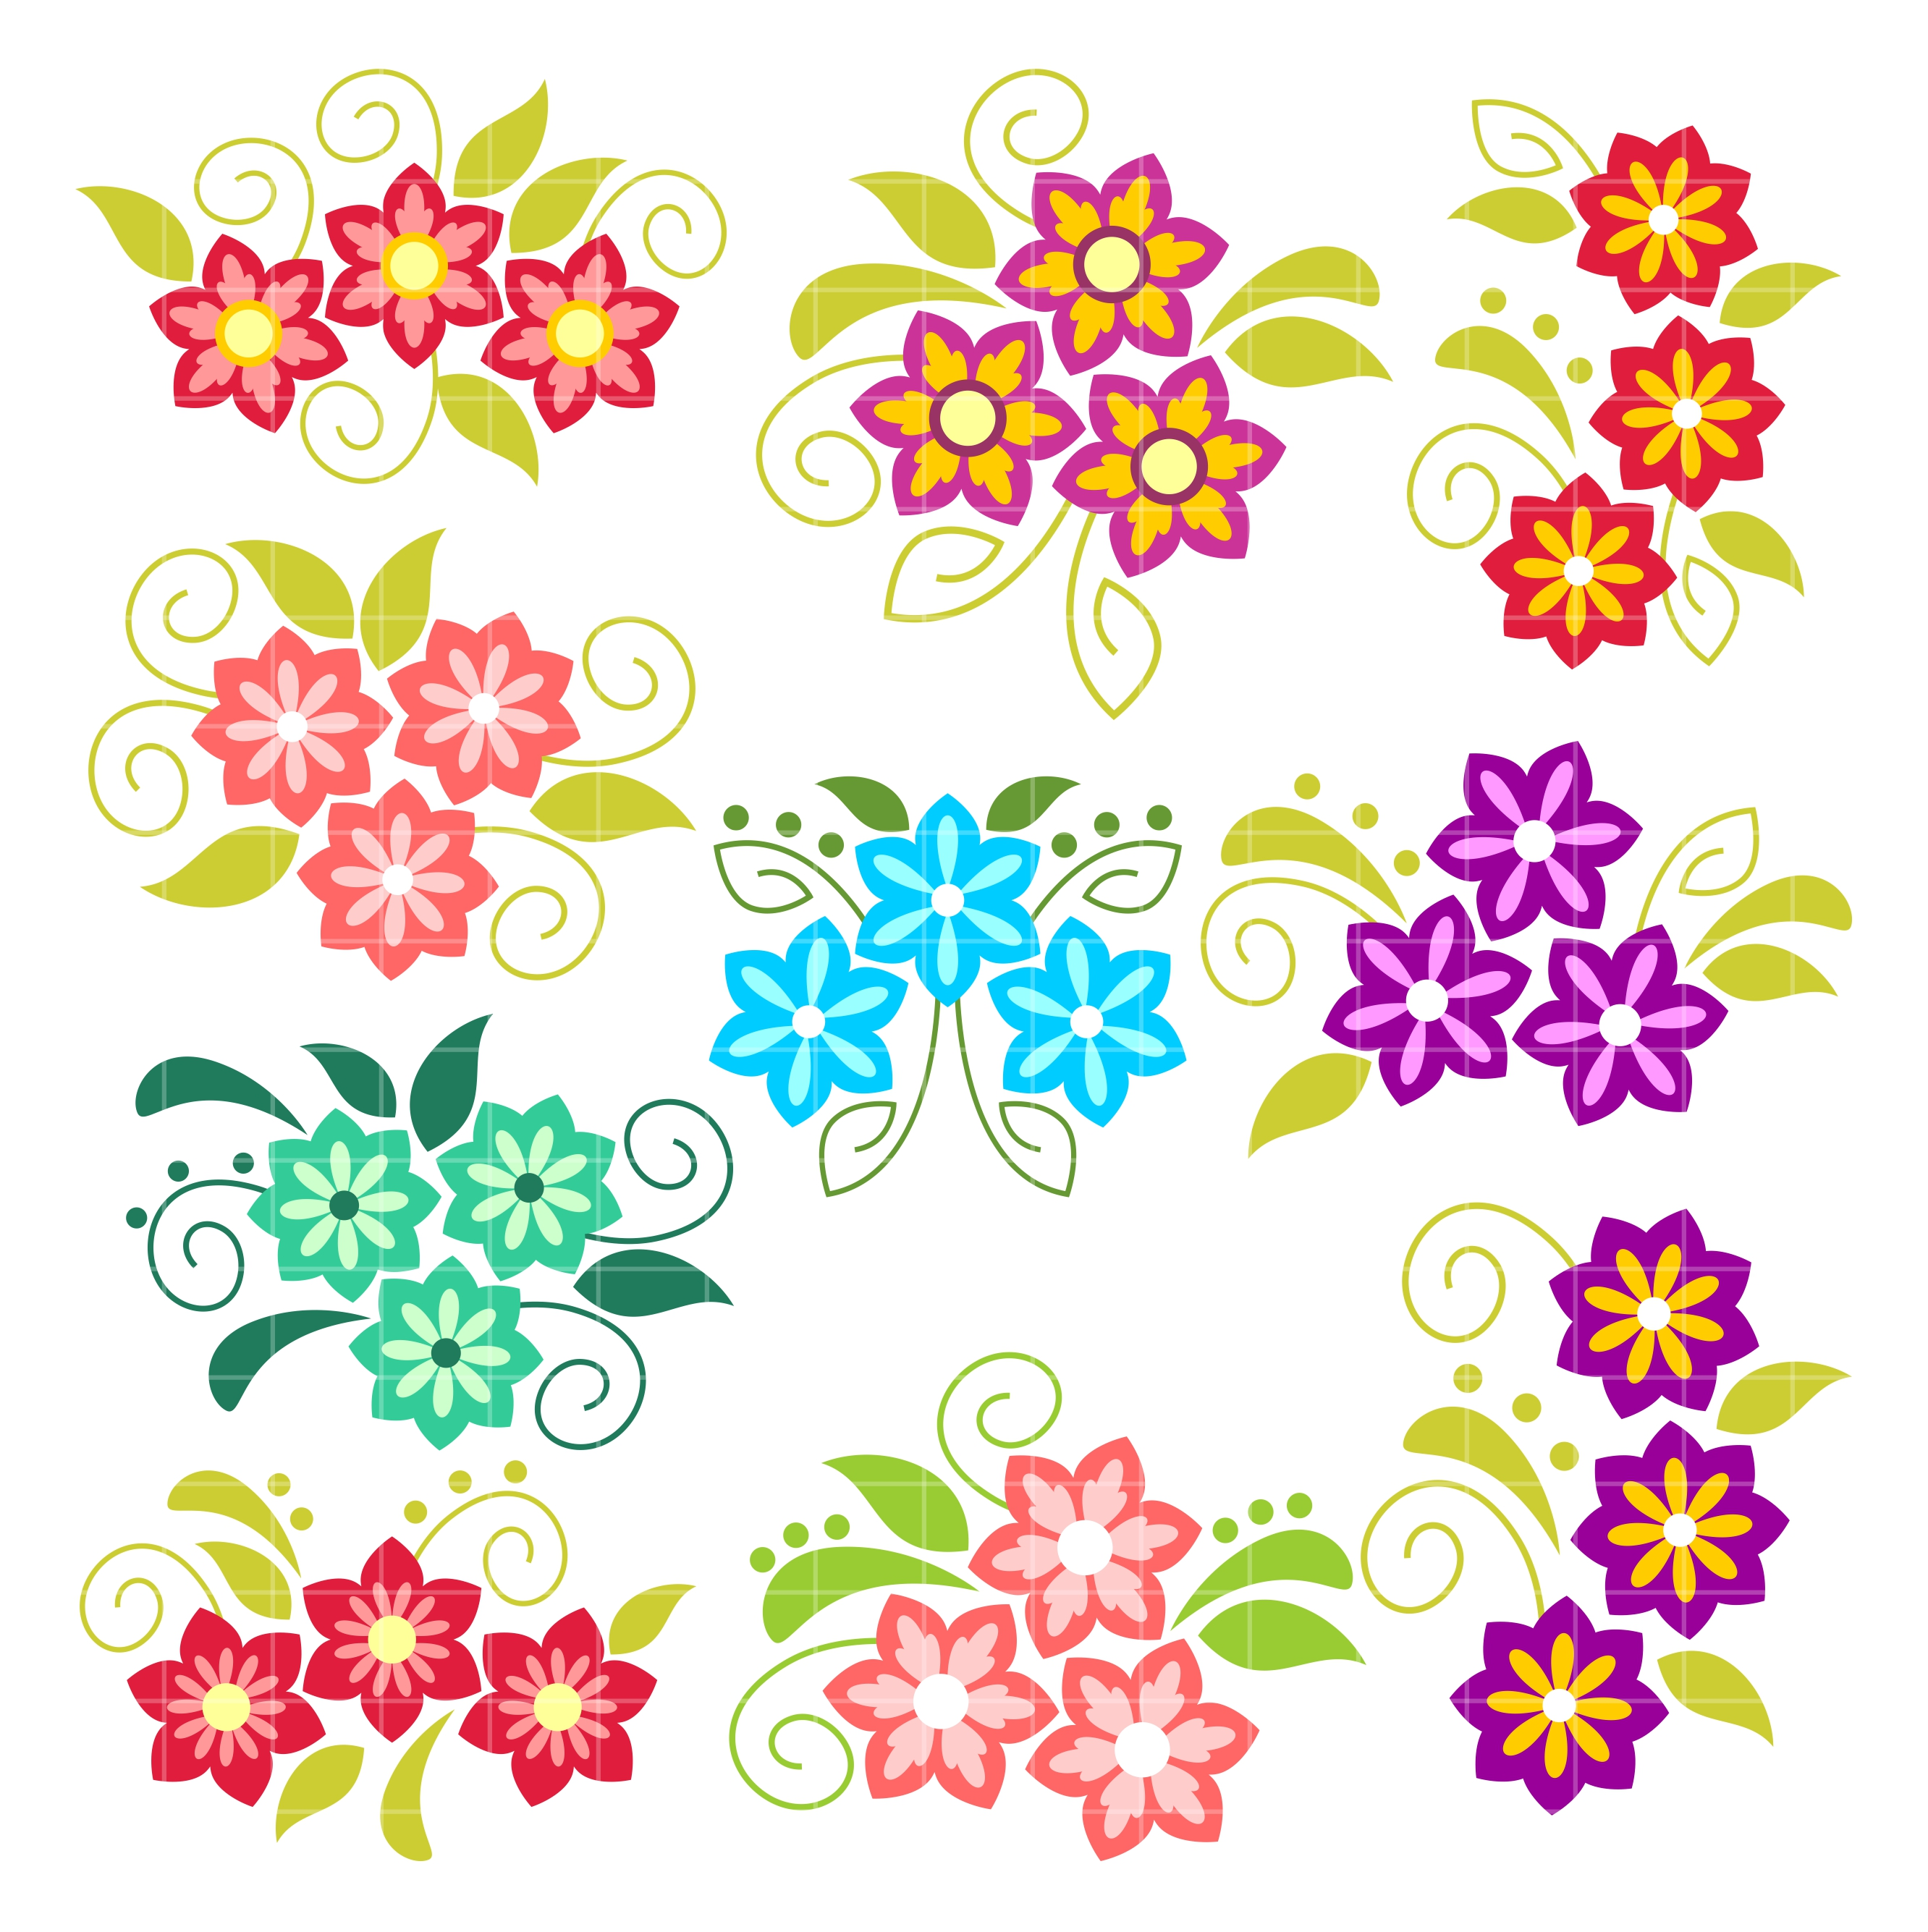 Pretty Flowers Arts Set Semi Exclusive Clip Art Set For Digitizing and More.